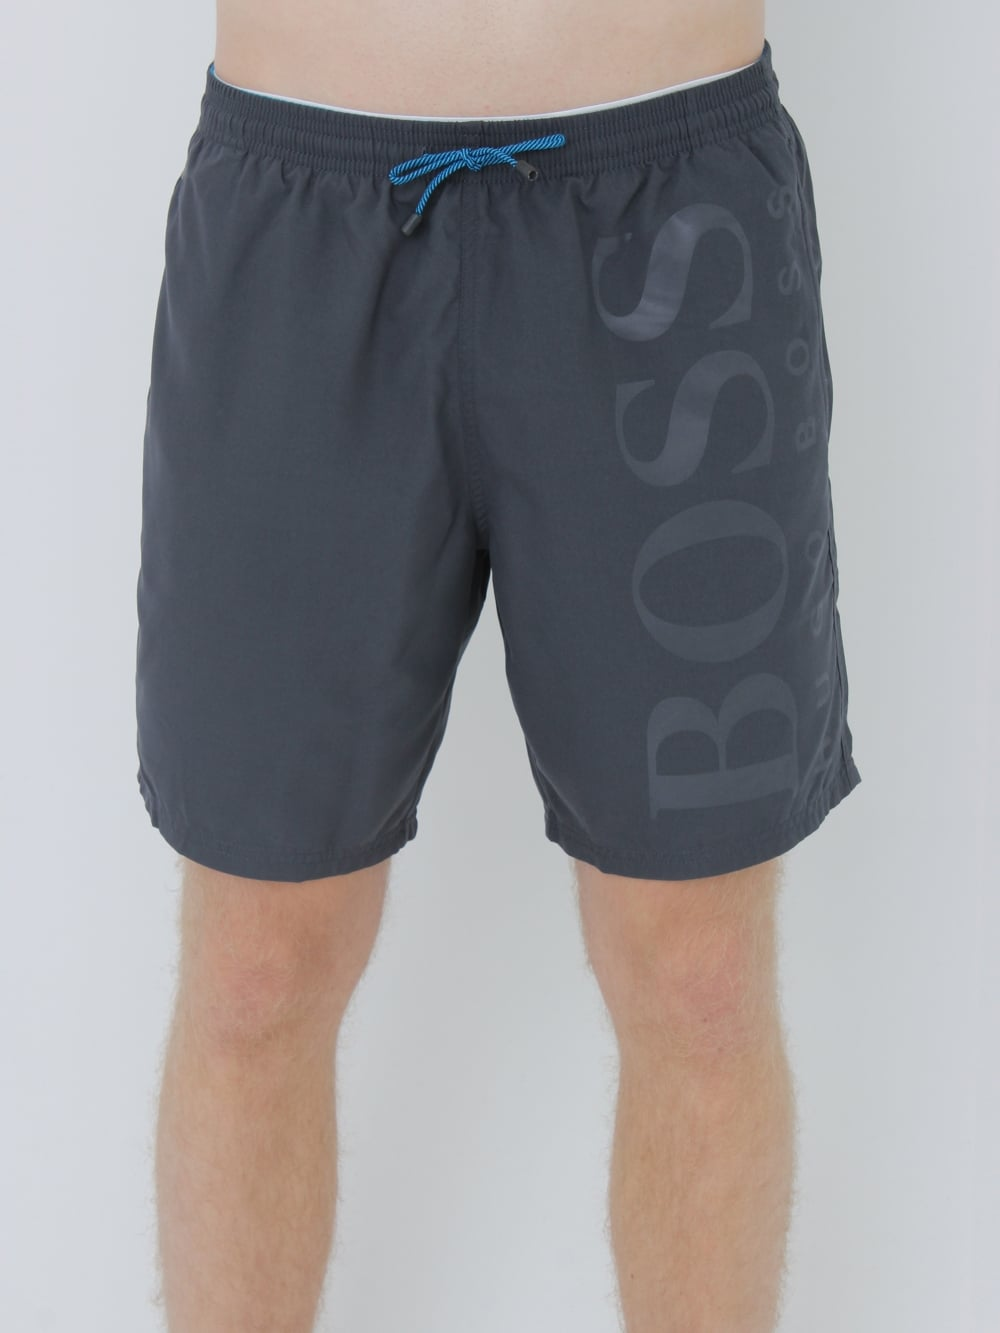 08bbf74938 HUGO BOSS BOSS Hugo Boss Orca Swim Shorts in Black - Northern Threads